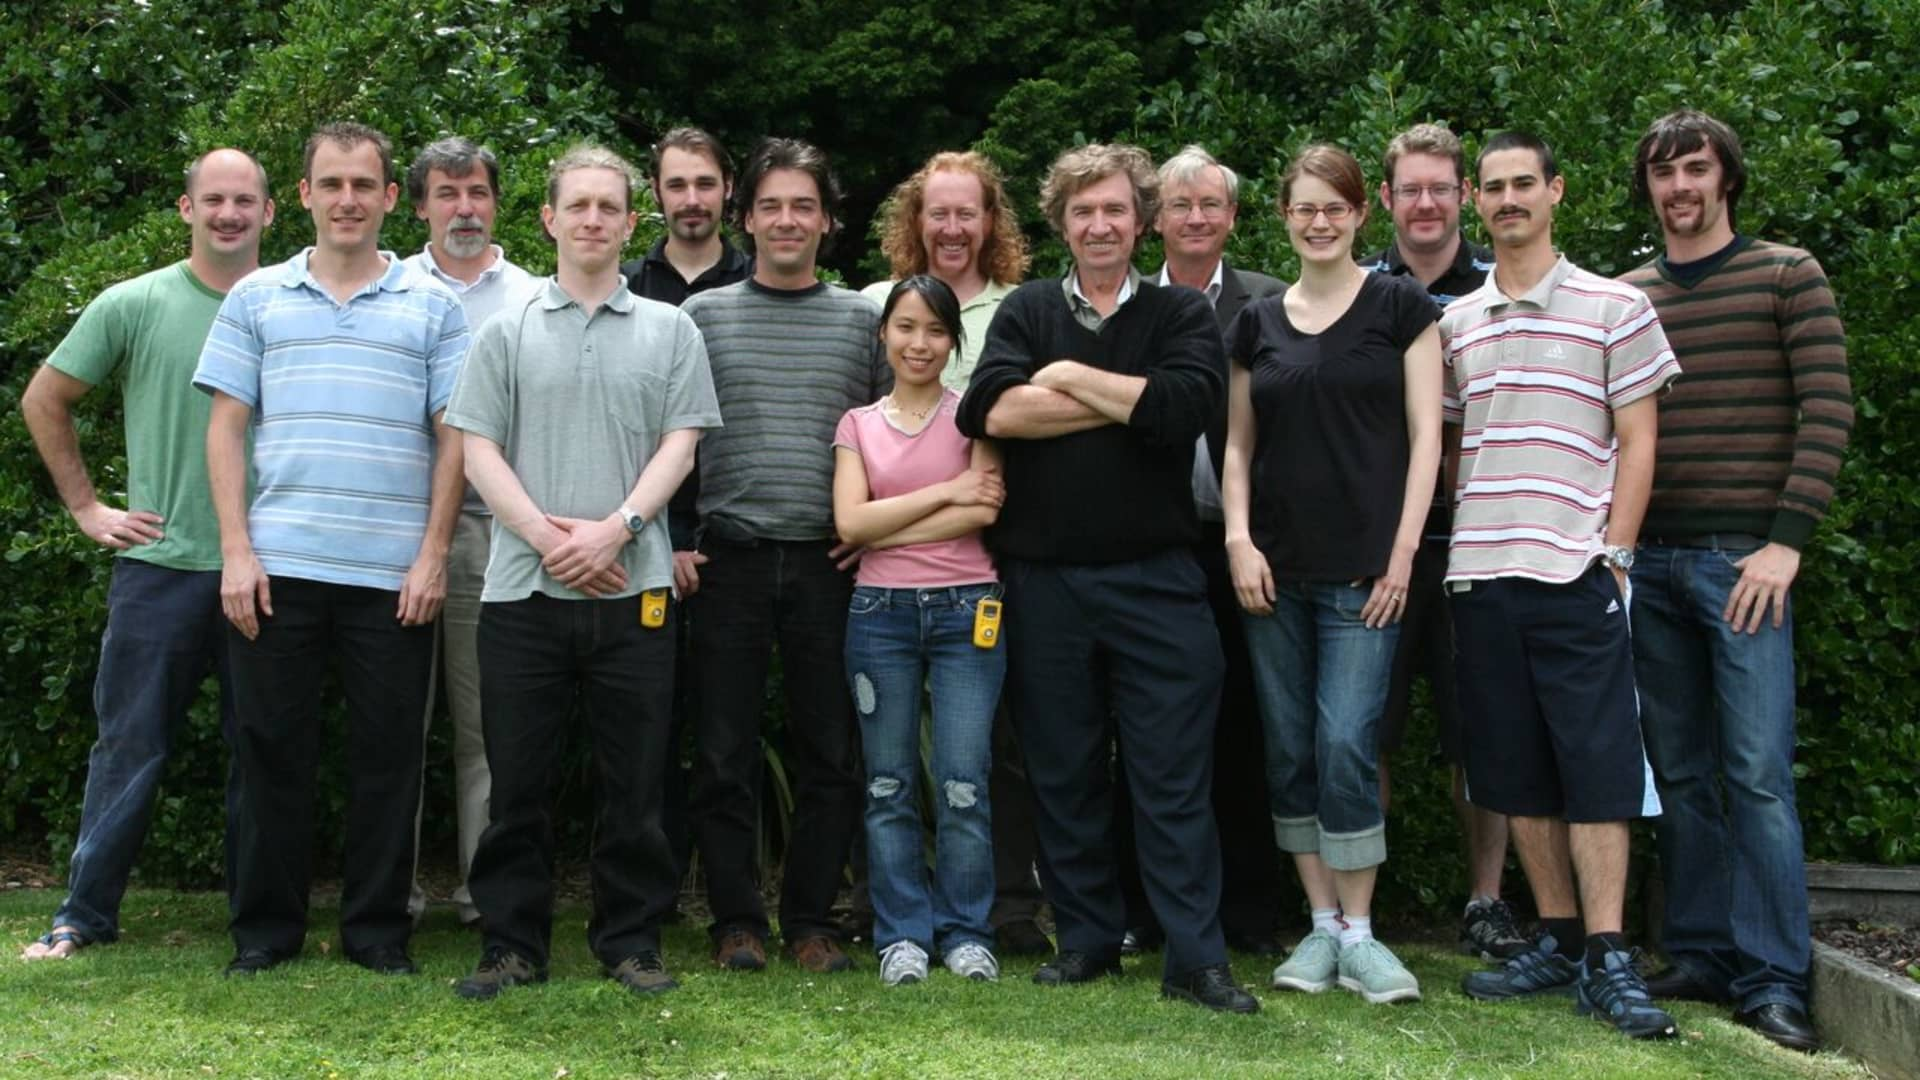 The entire LanzaTech team in late 2007. Co-founder and chief scientific officer Dr. Sean Simpson is in the back row with curly red hair. Co-founder Dr. Richard Forster (who has since passed of cancer) is in the back row to the left of Simpson. Freya Burton, the chief sustainability officer, is in the front row second from the right.